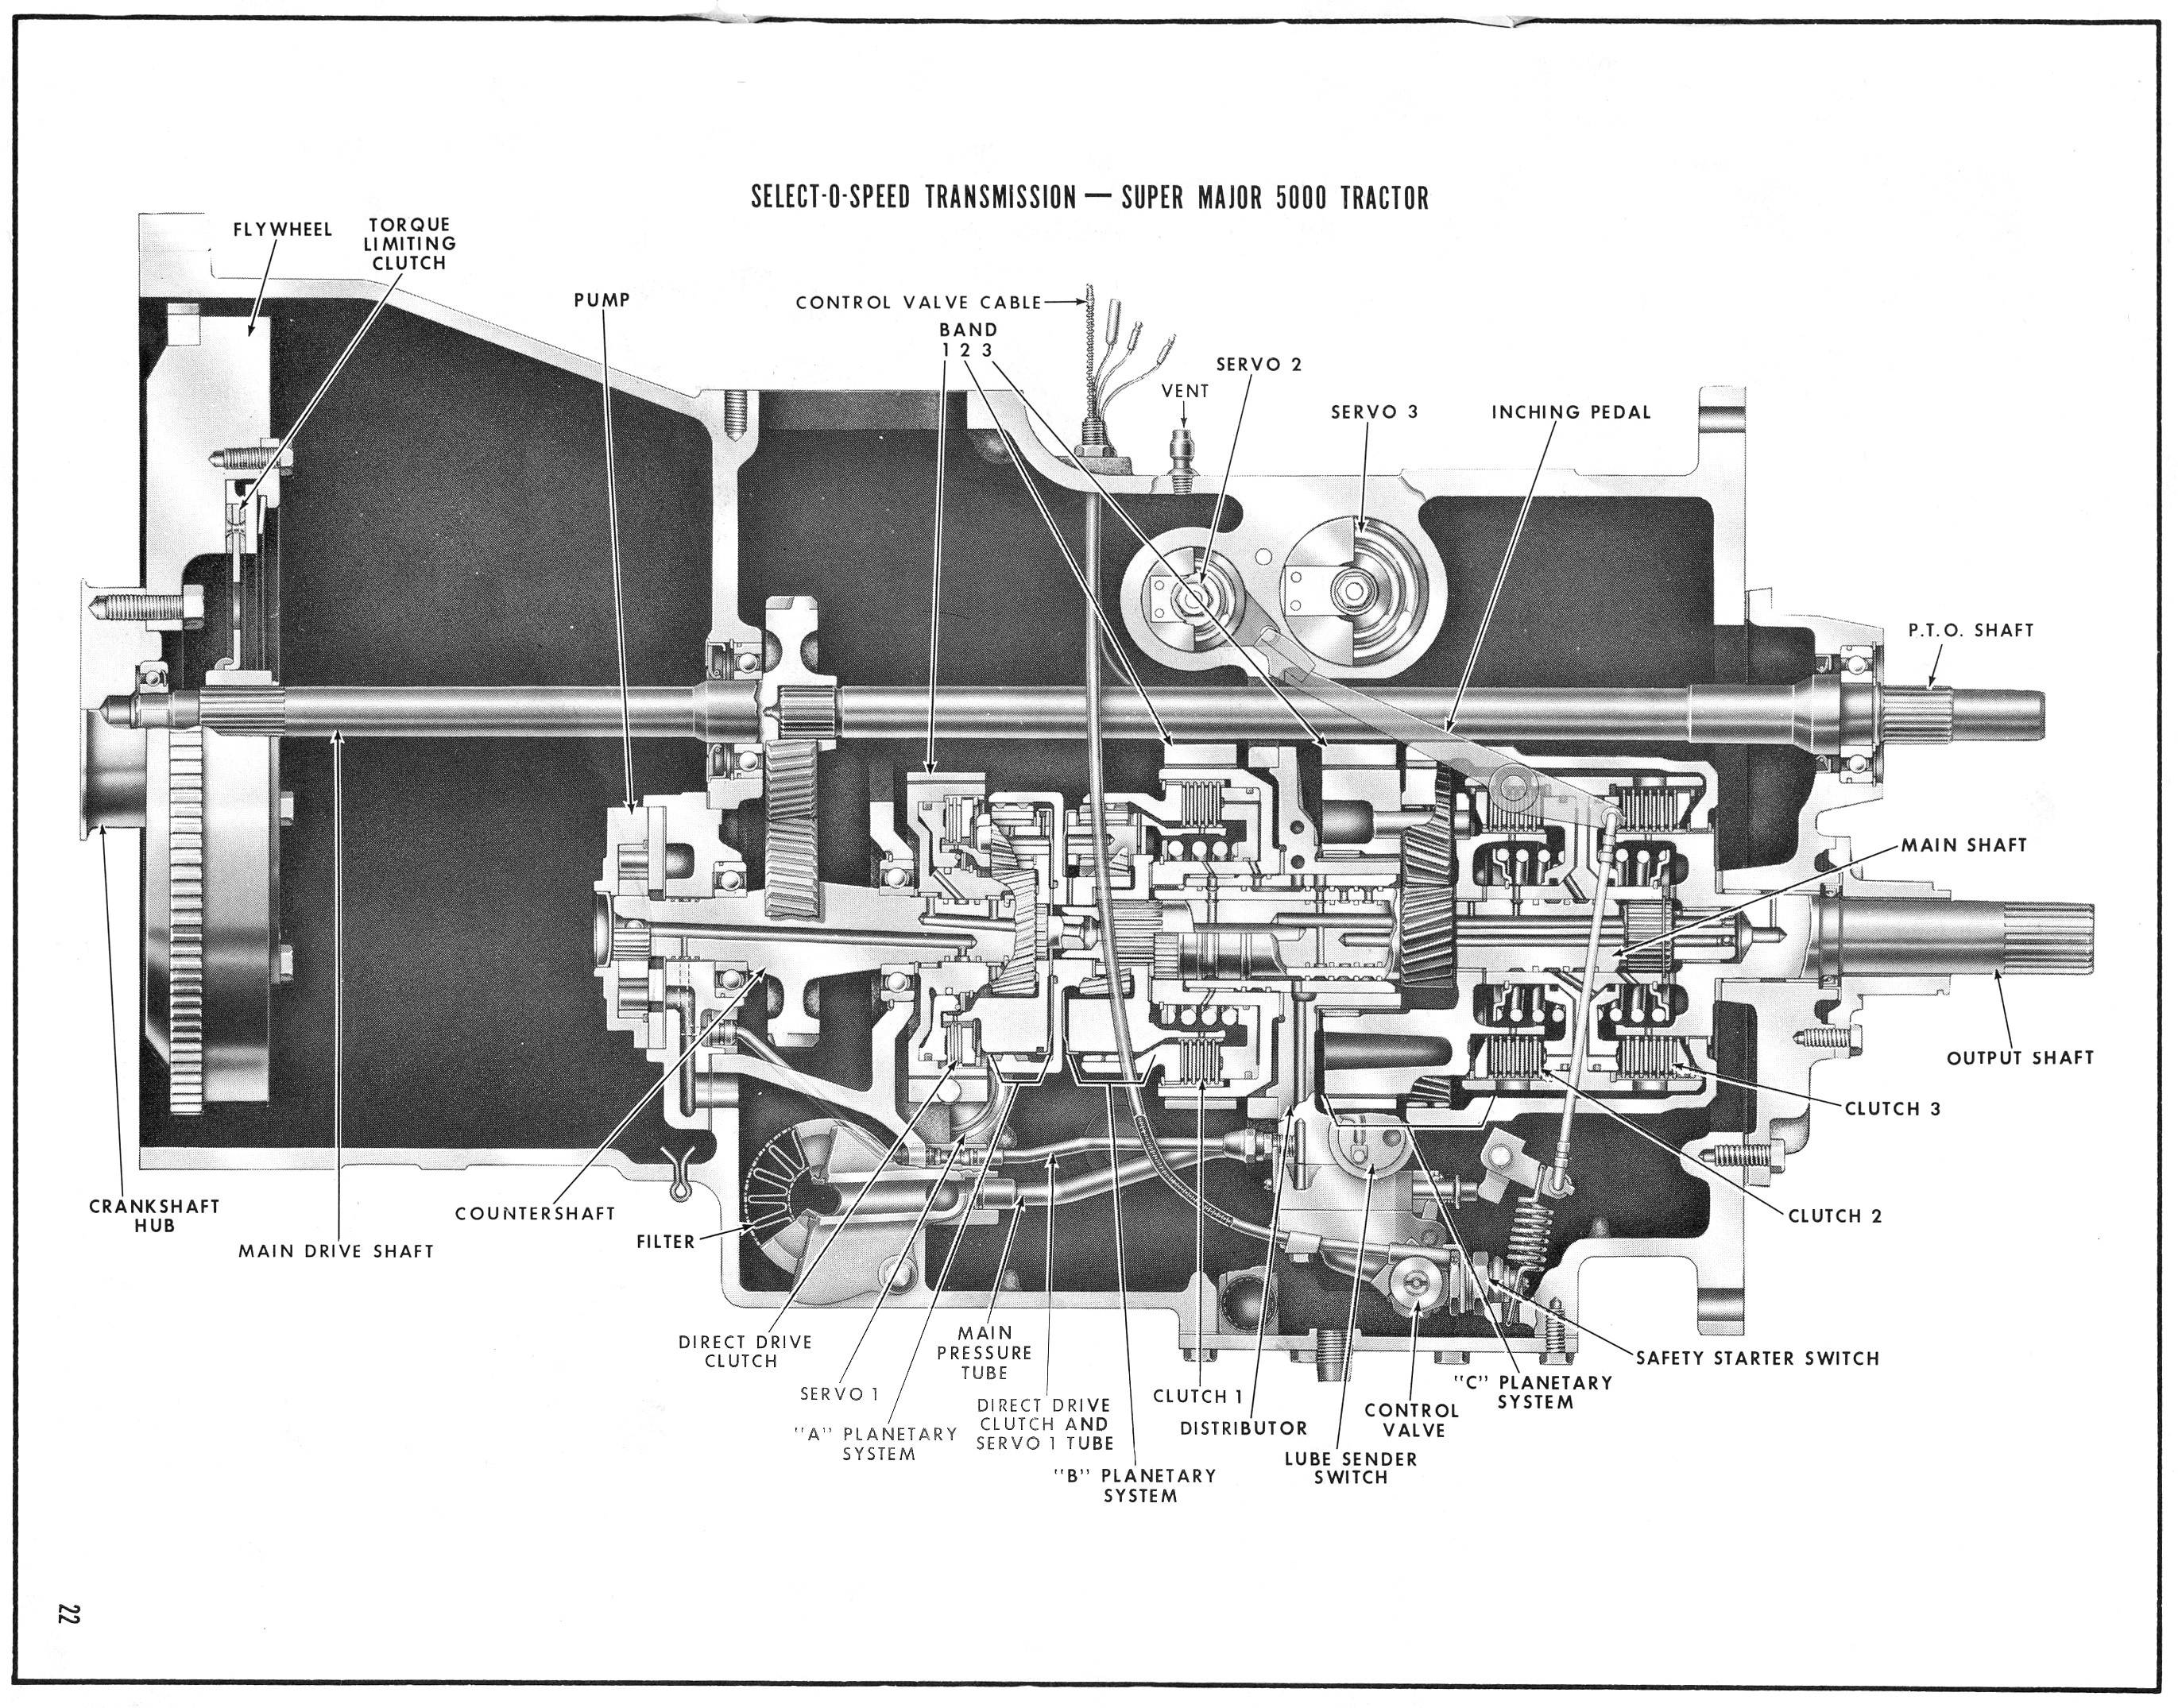 1964 ford 2000 tractor wiring diagram wc 1644  1964 ford 5000 tractor wiring diagram schematic wiring  1964 ford 5000 tractor wiring diagram